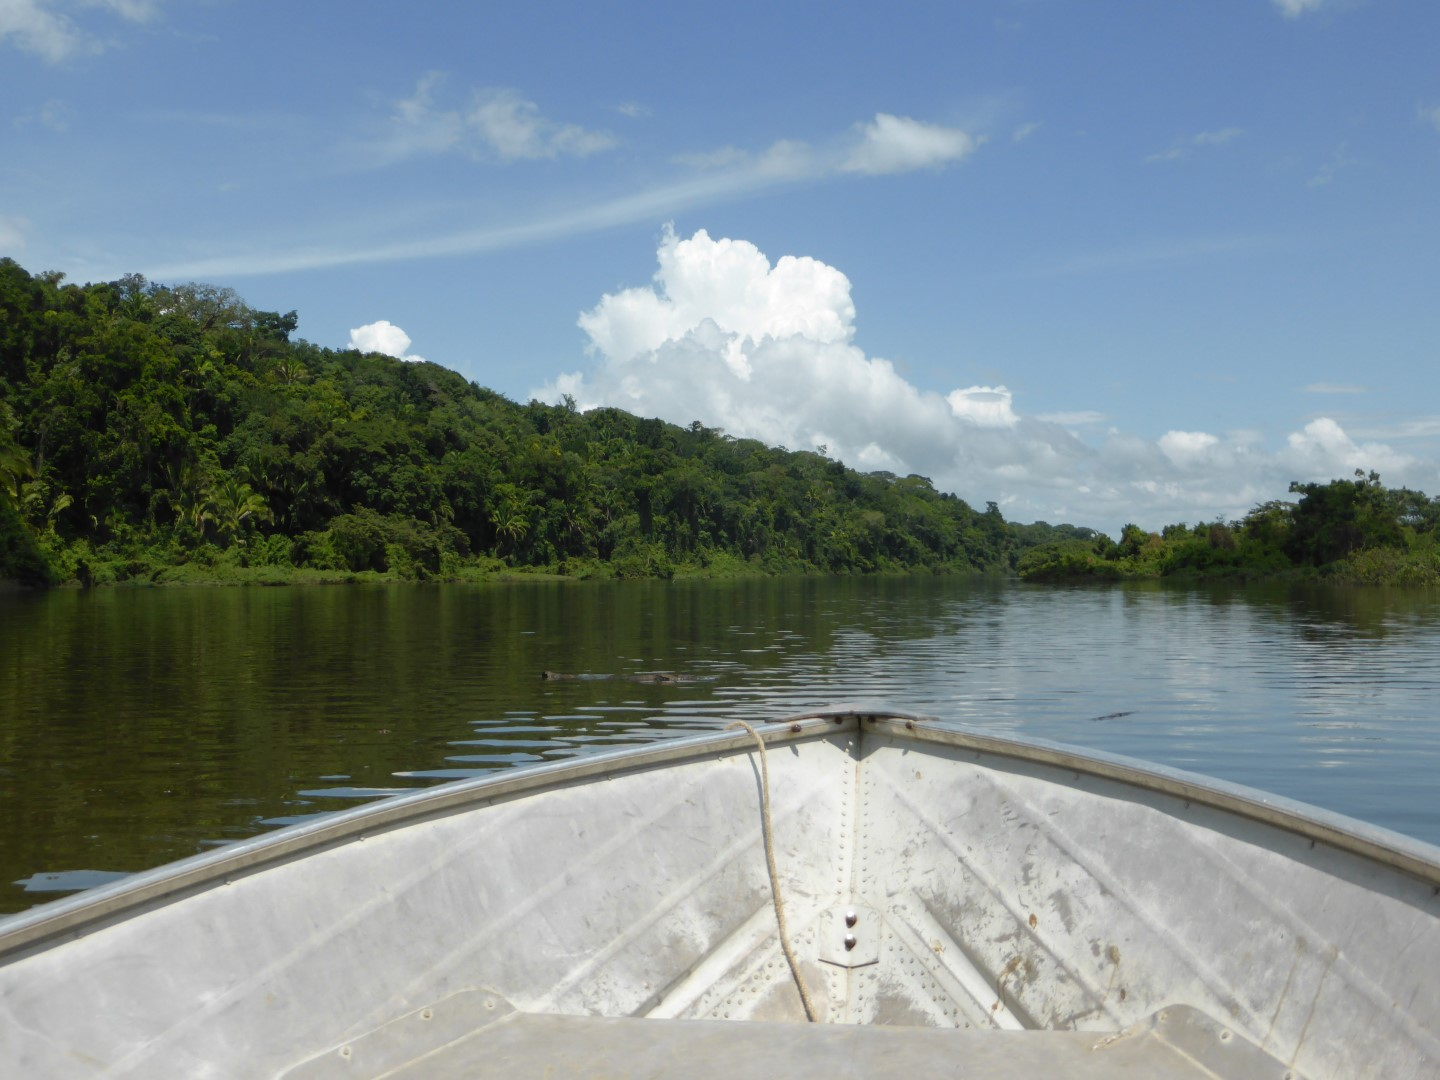 Boat trip on Pasion River leading to Ceibal, Guatemala